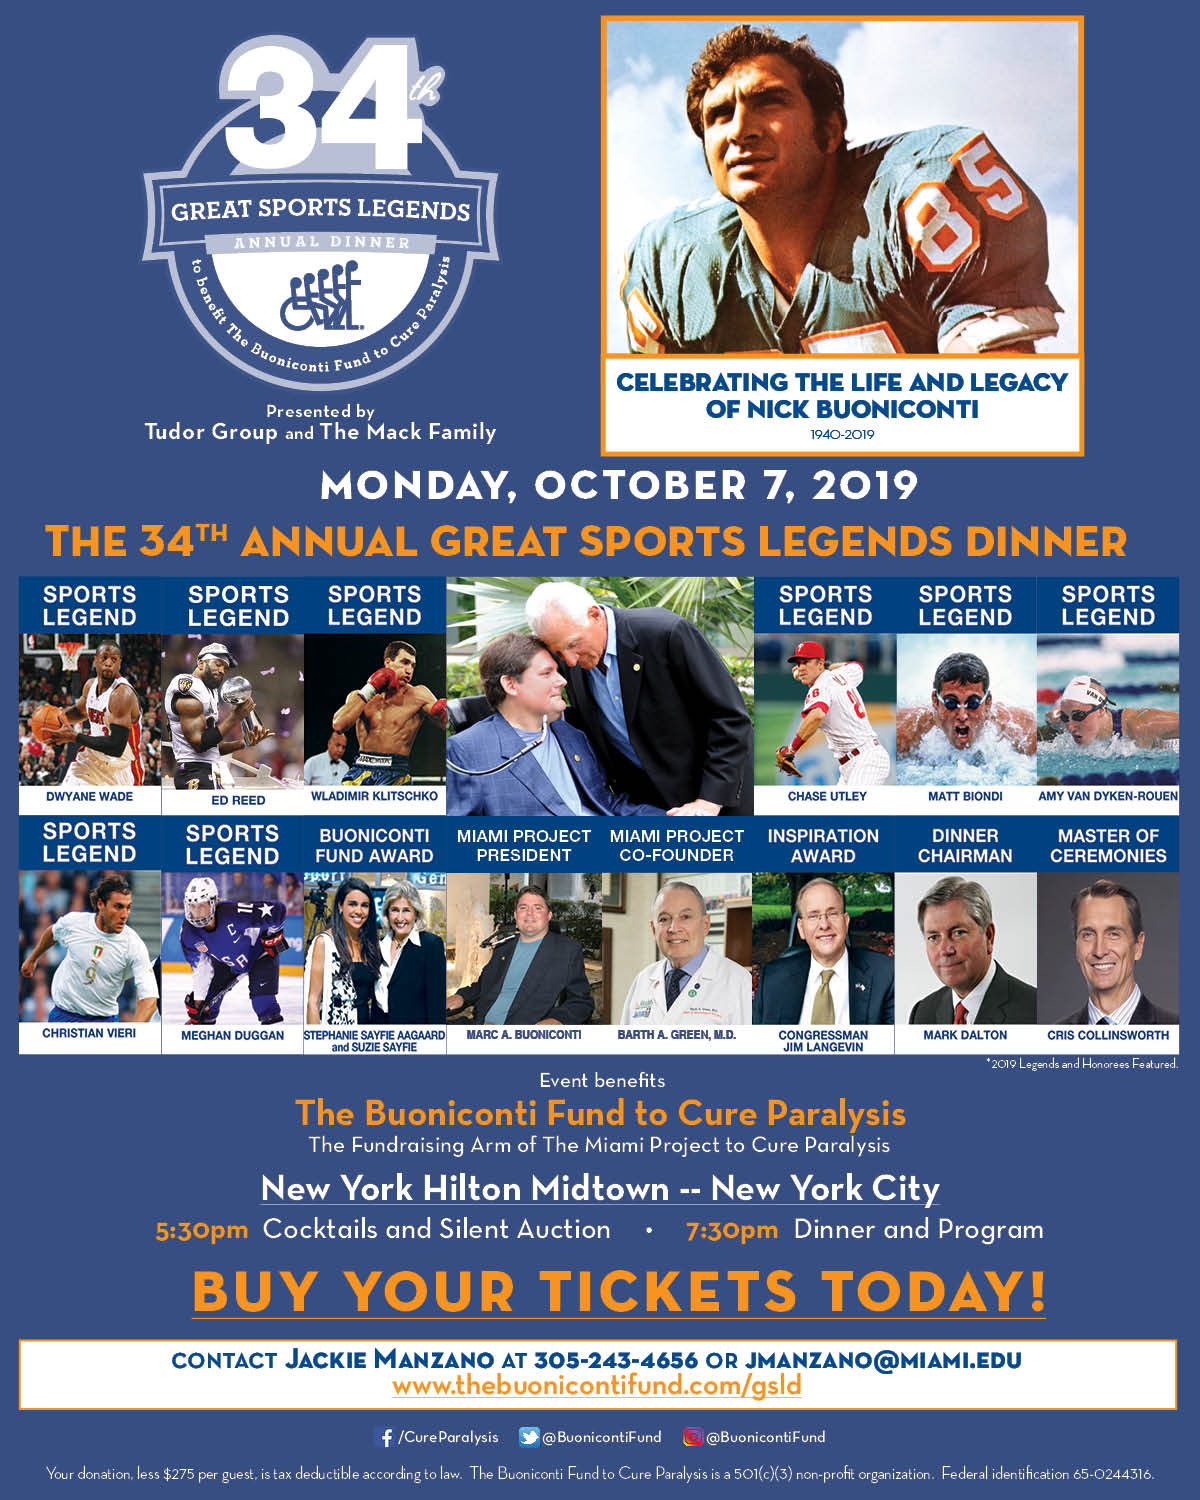 34th Annual Great Sports Legends Dinner presented by Tudor Group and The Mack Family